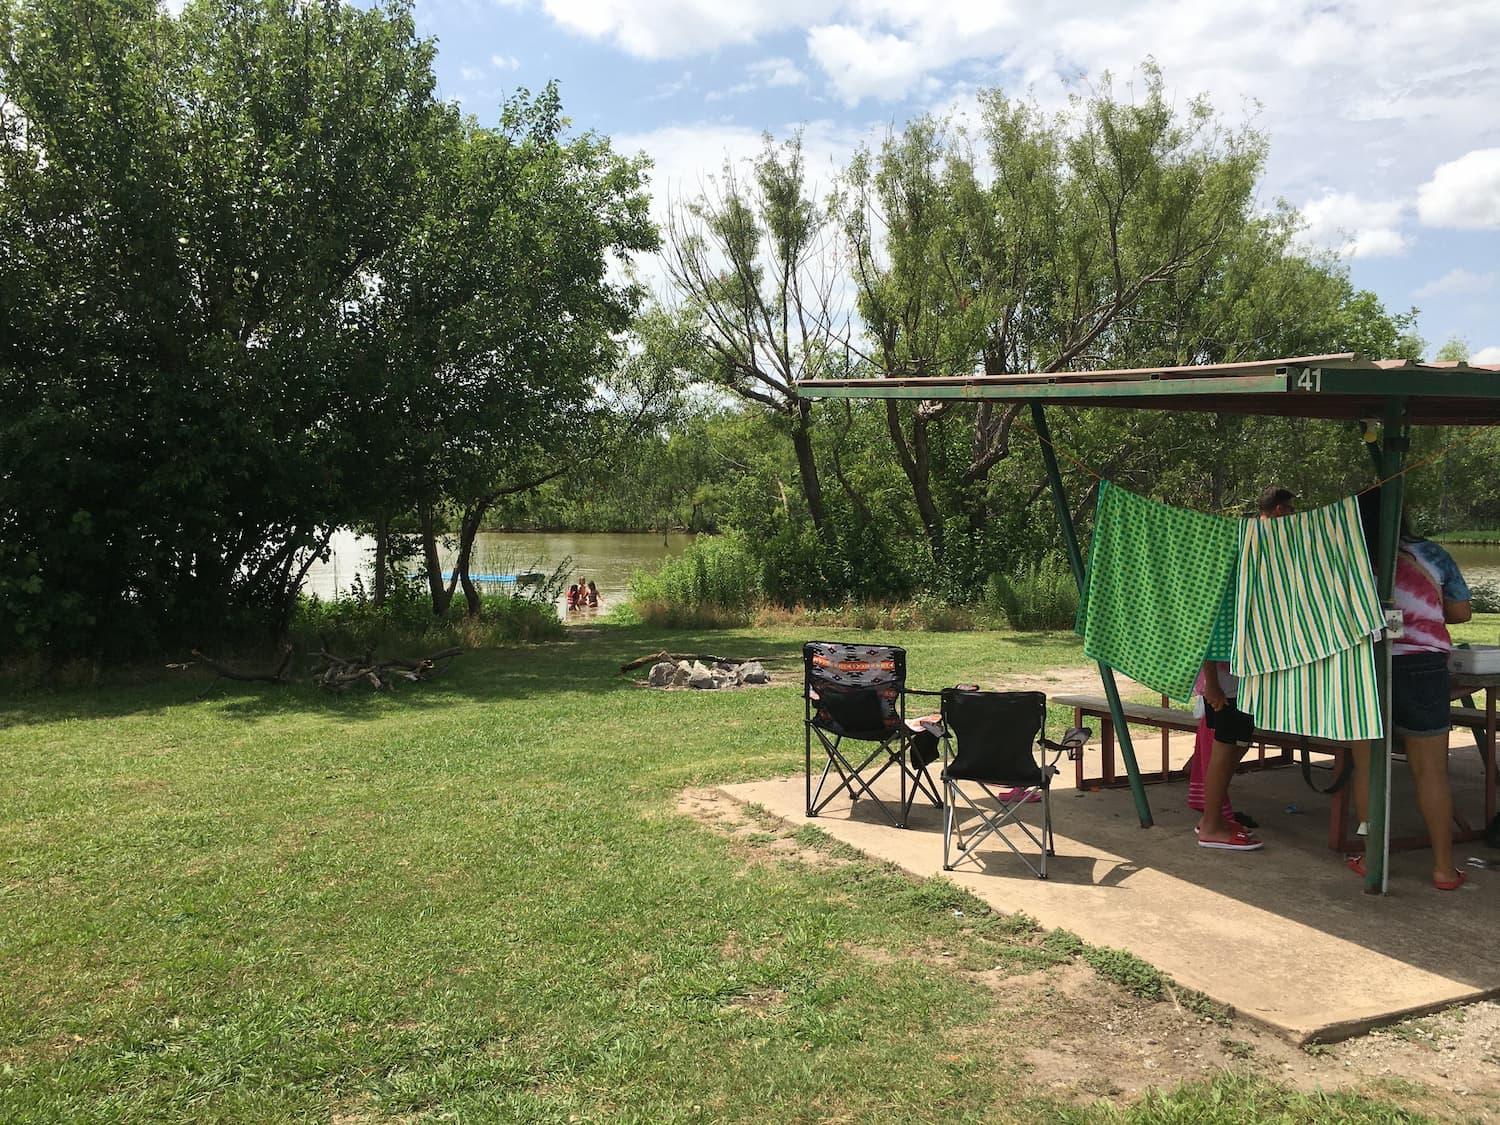 RV with awning and camp chais parked beside river where campers are swimming.